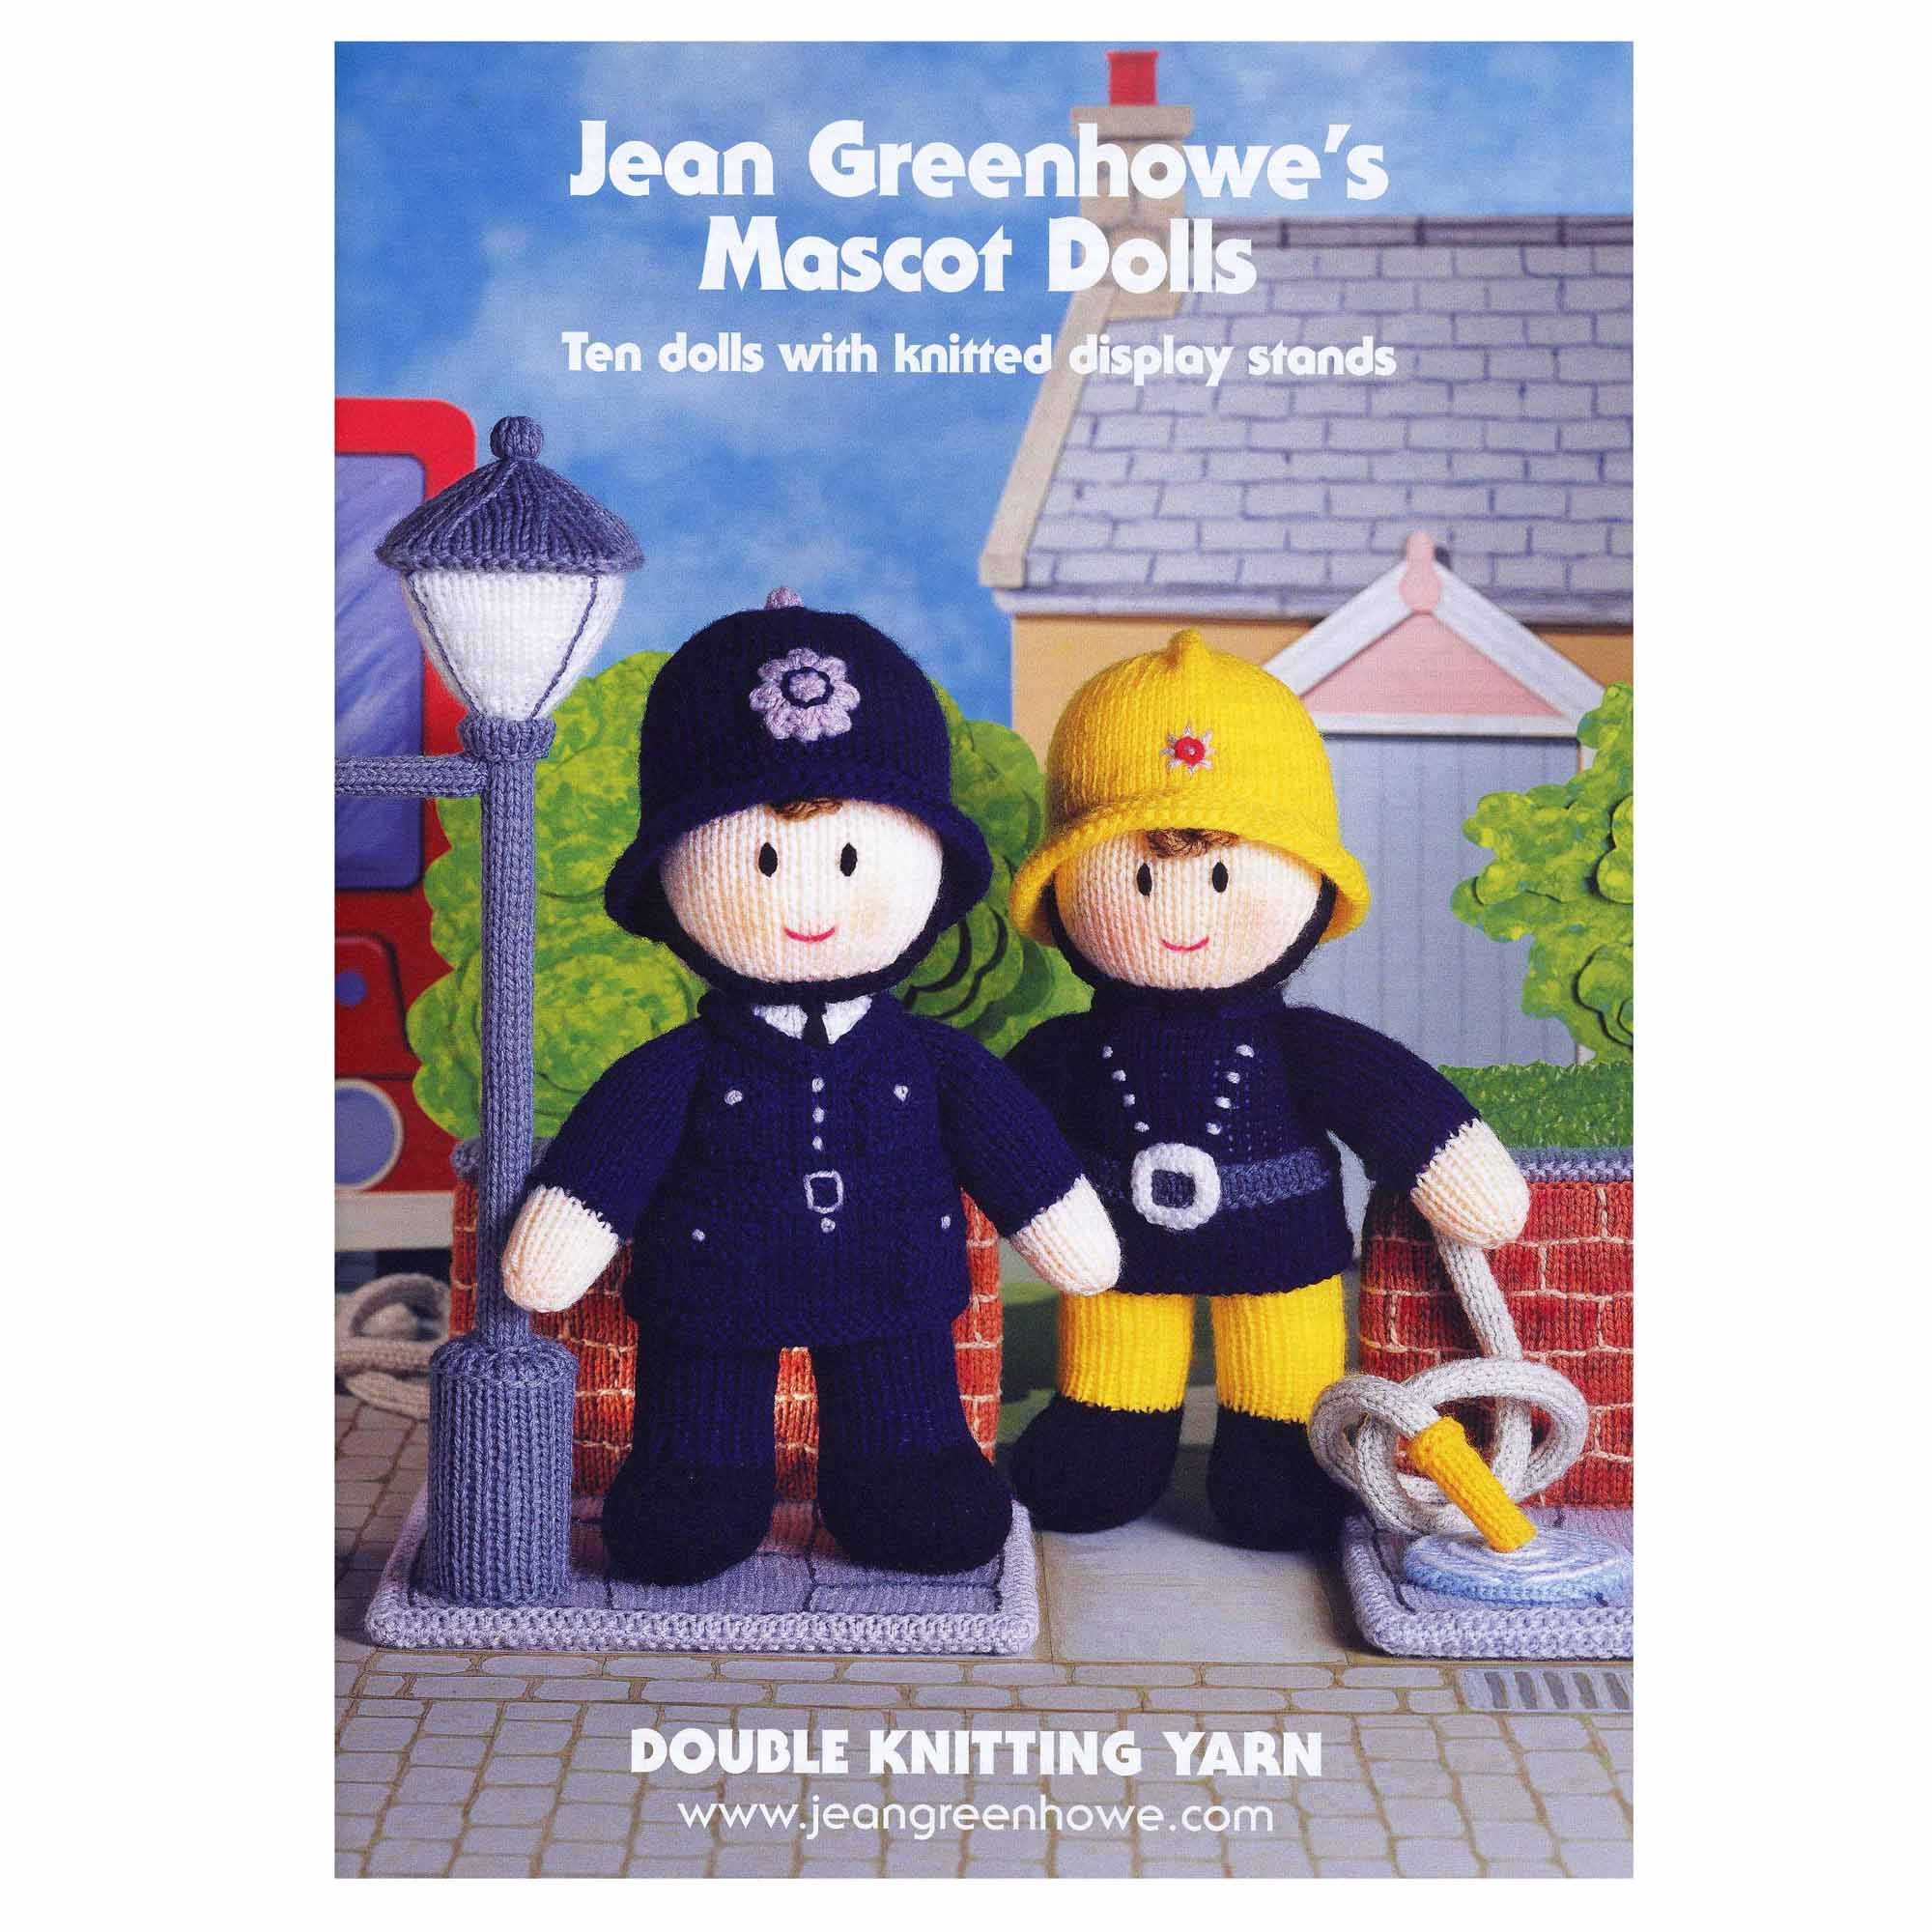 Patons Jean Greenhowe's Mascot Dolls Knitting Book